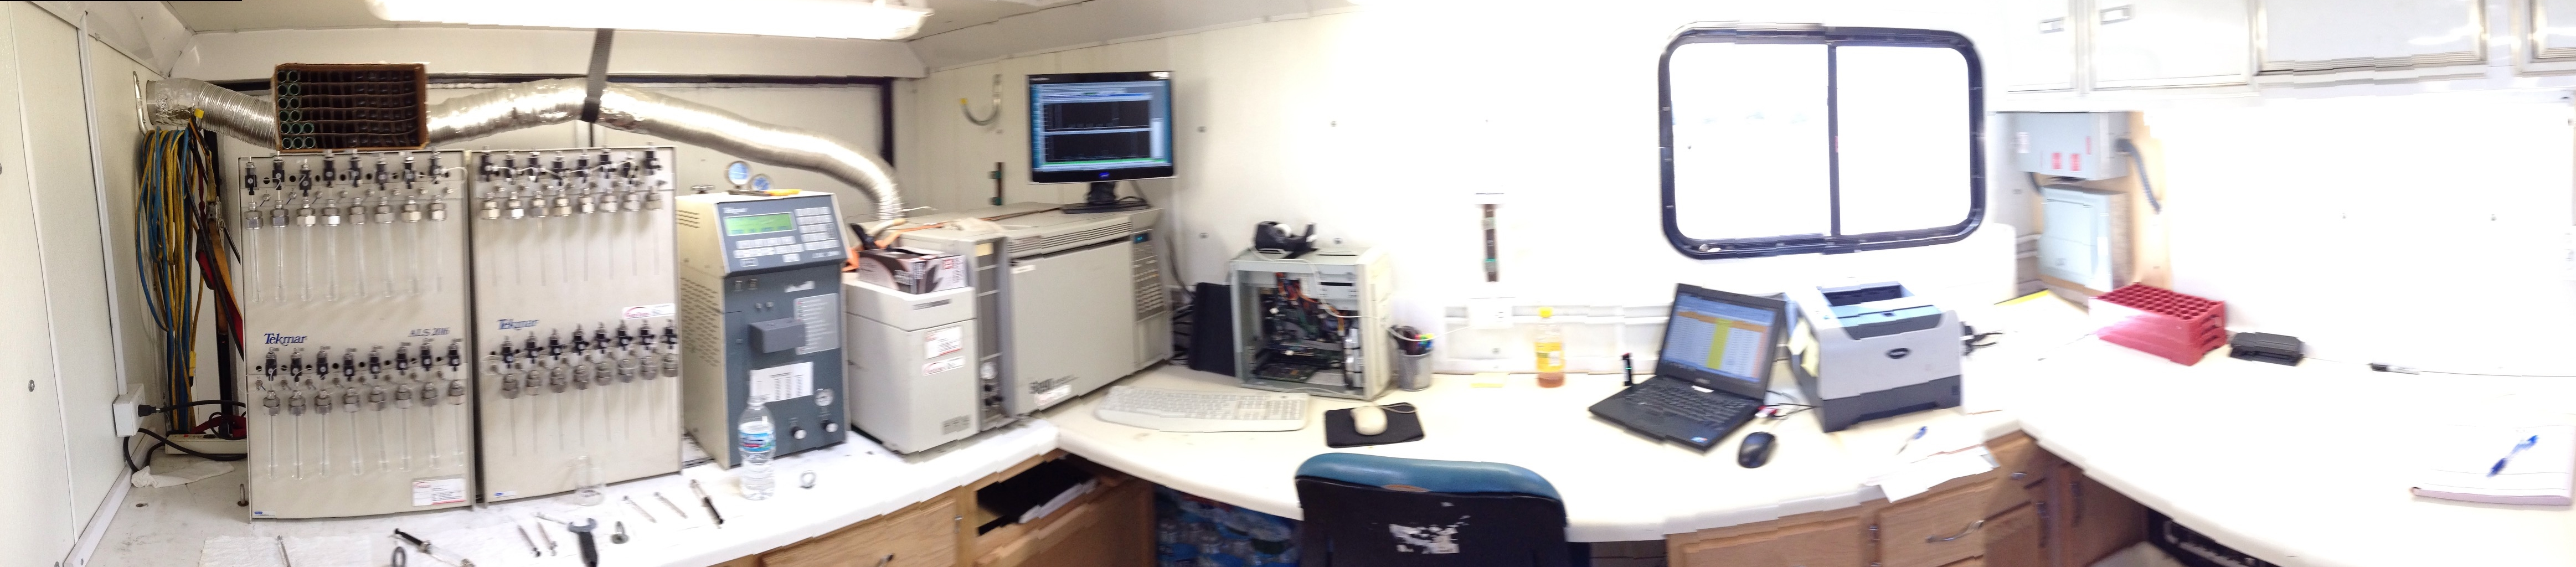 mobile lab interior